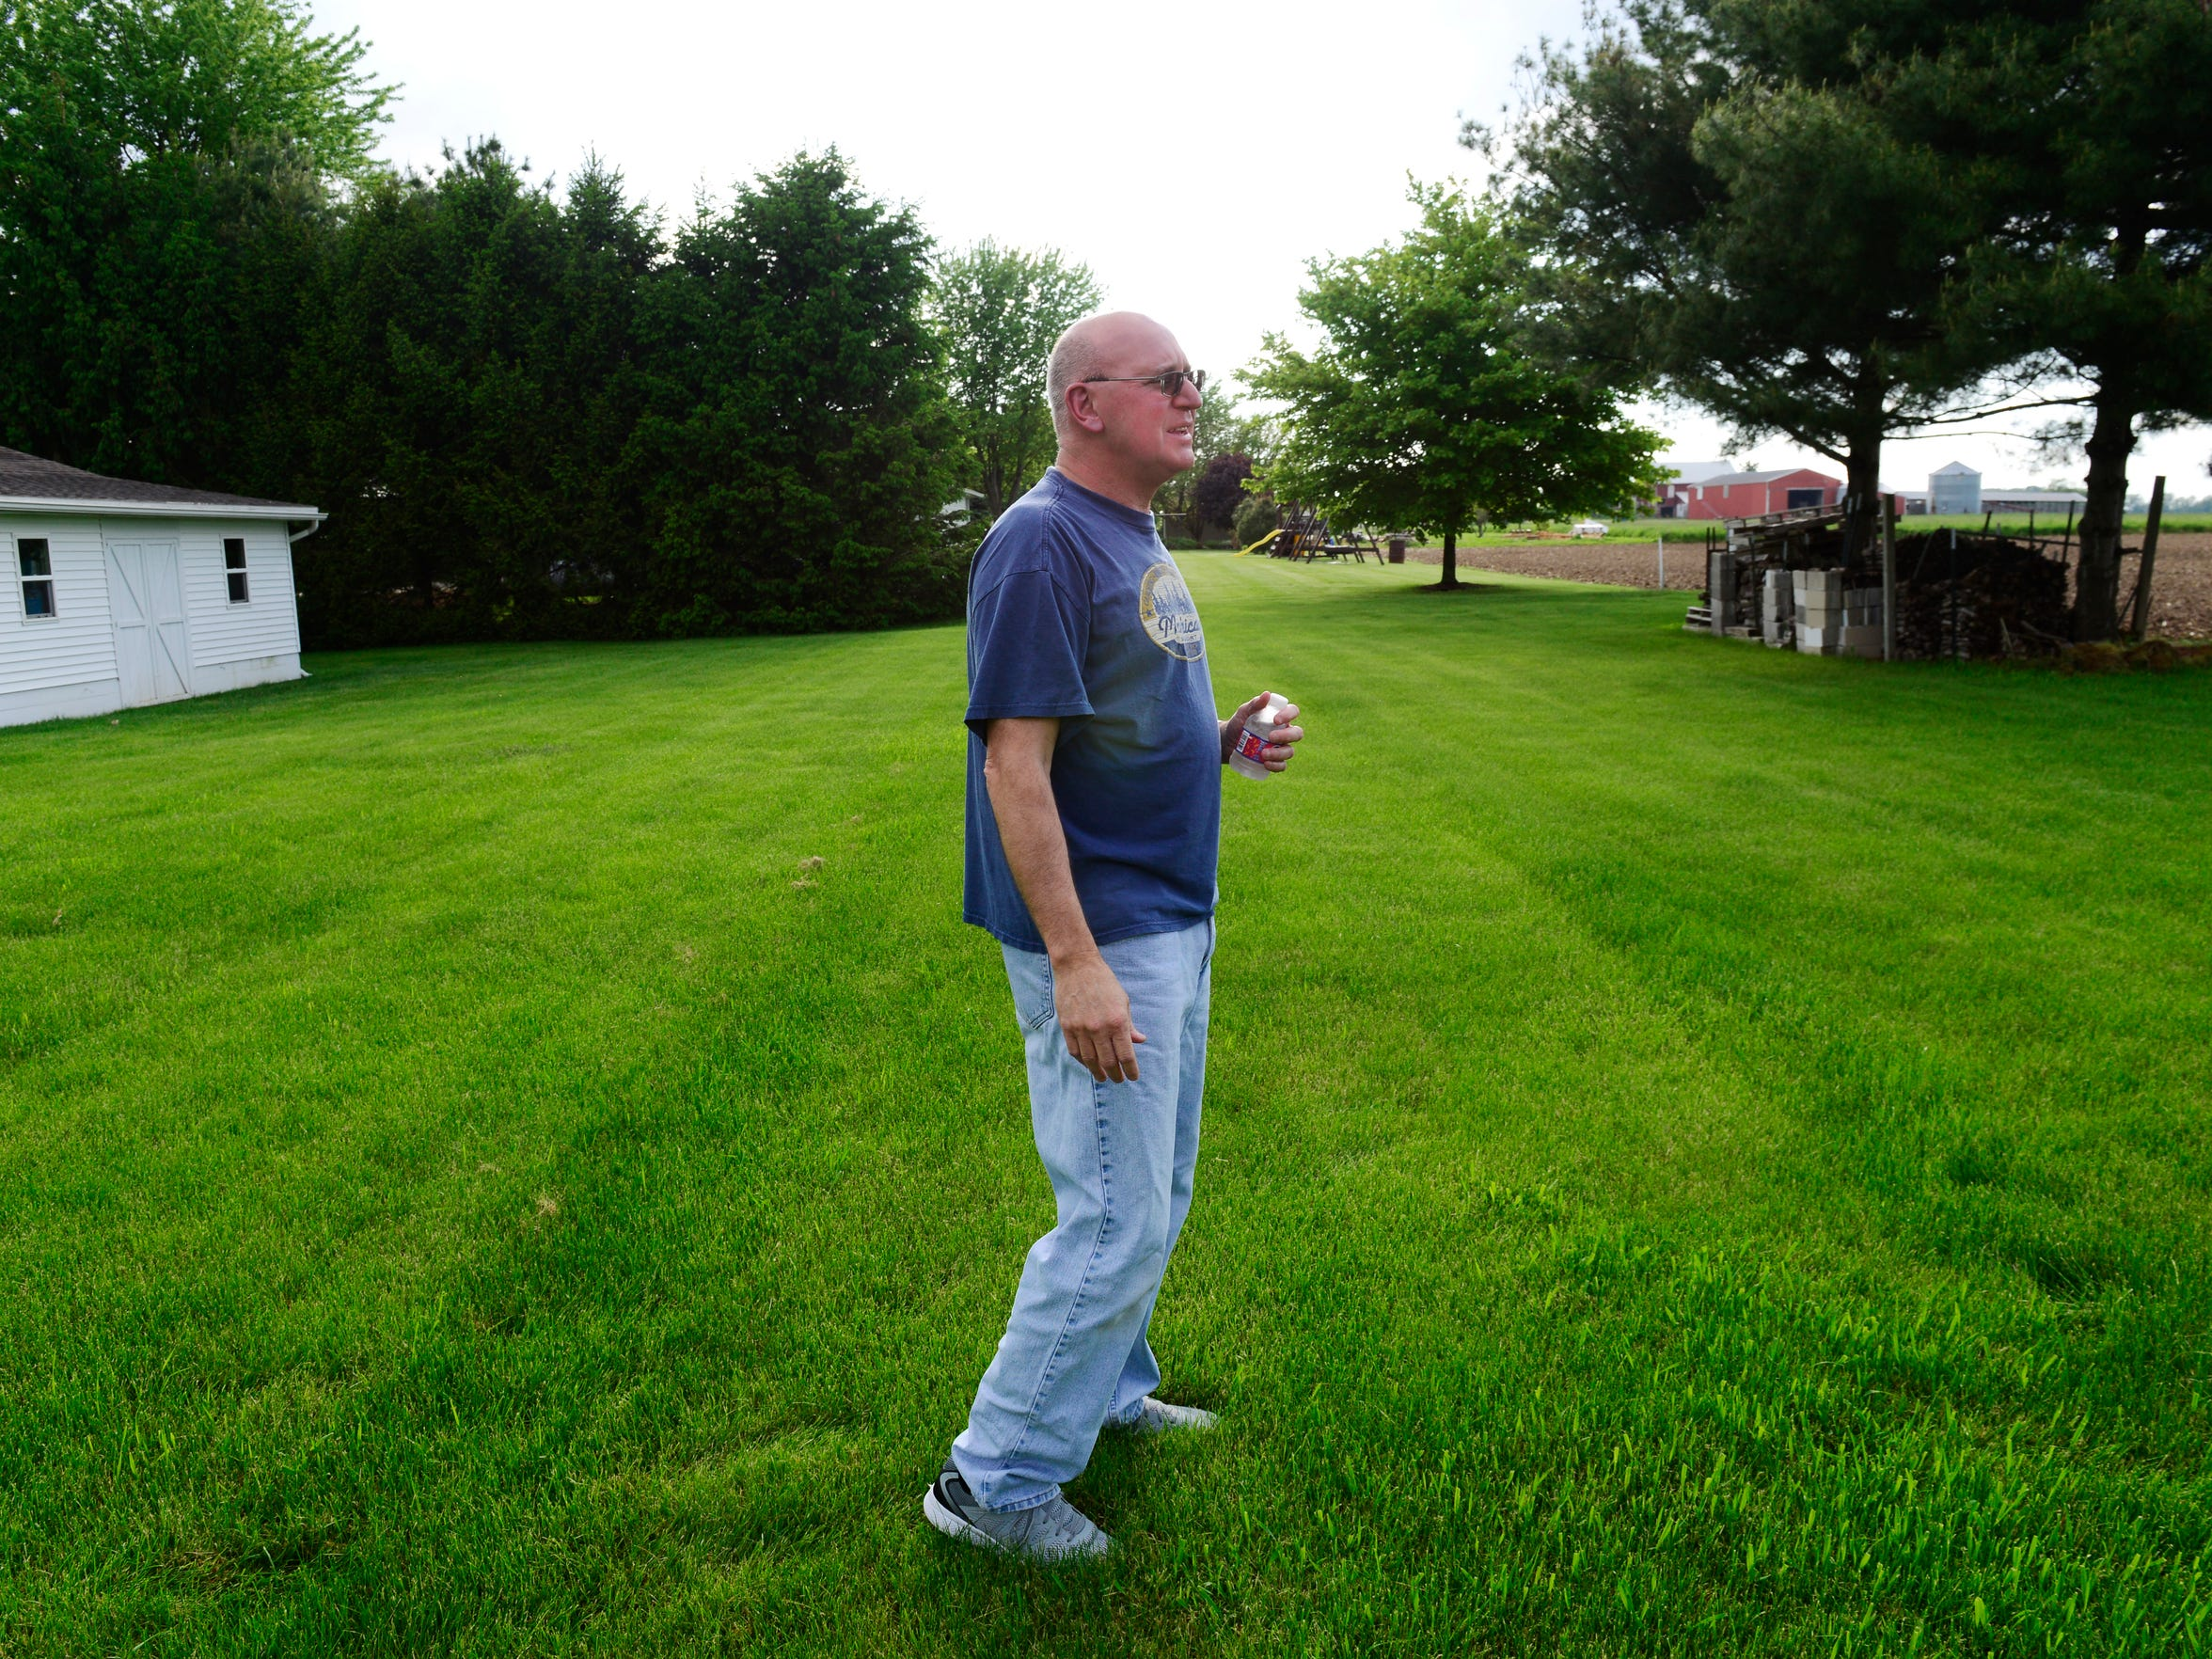 Ron Kelbley lives in Sandusky County, just north of